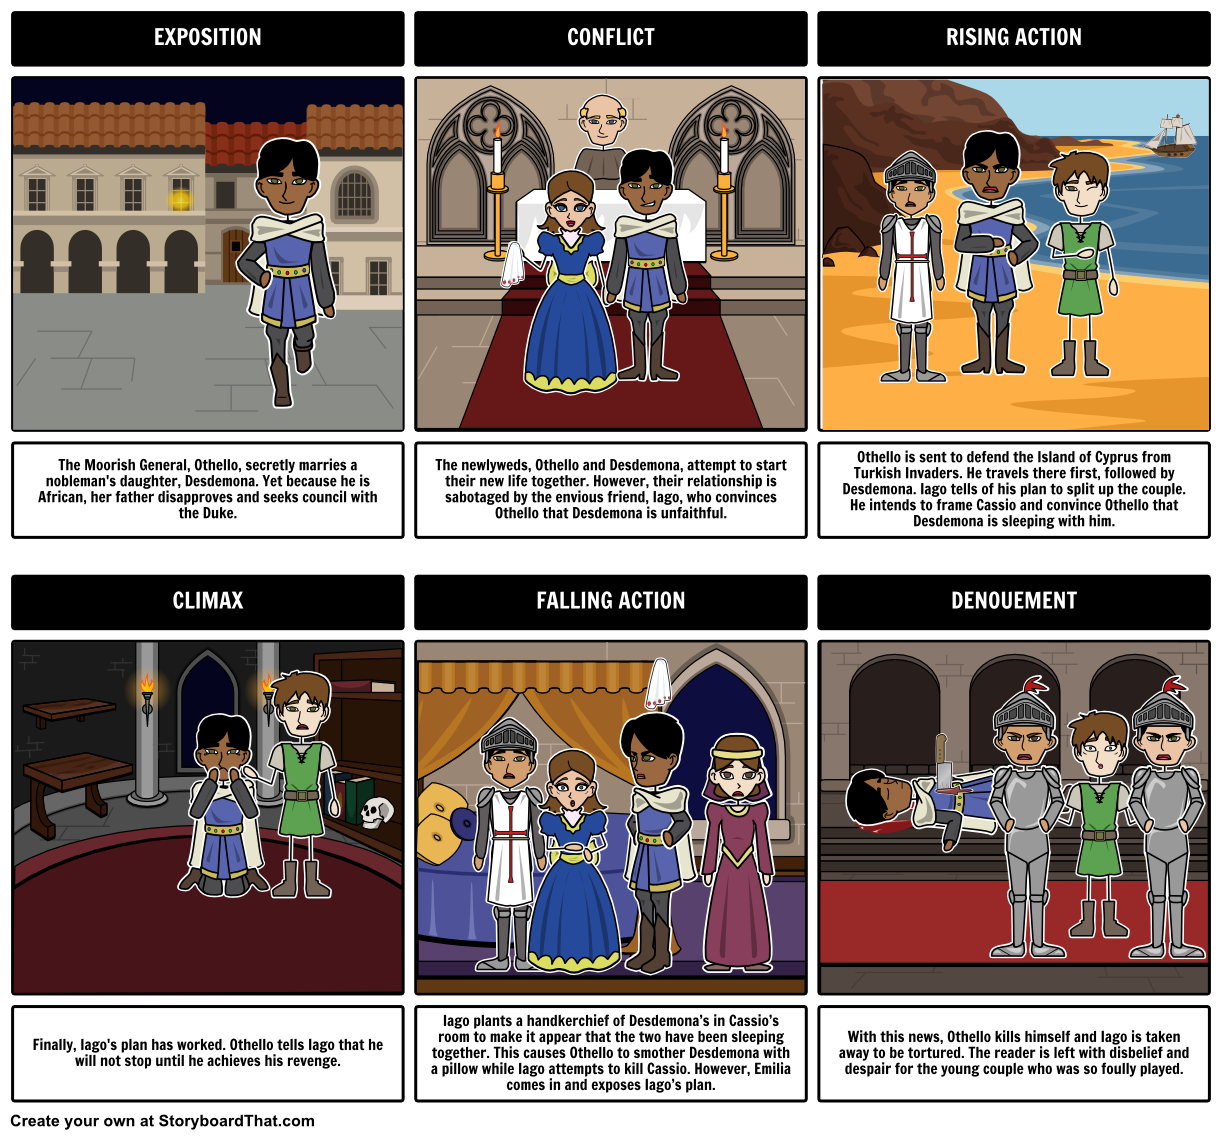 a plot review of william shakespeares othello Othello study guide contains a biography of william shakespeare, literature essays, a complete e-text, quiz questions, major themes, characters, and a full summary and analysis.